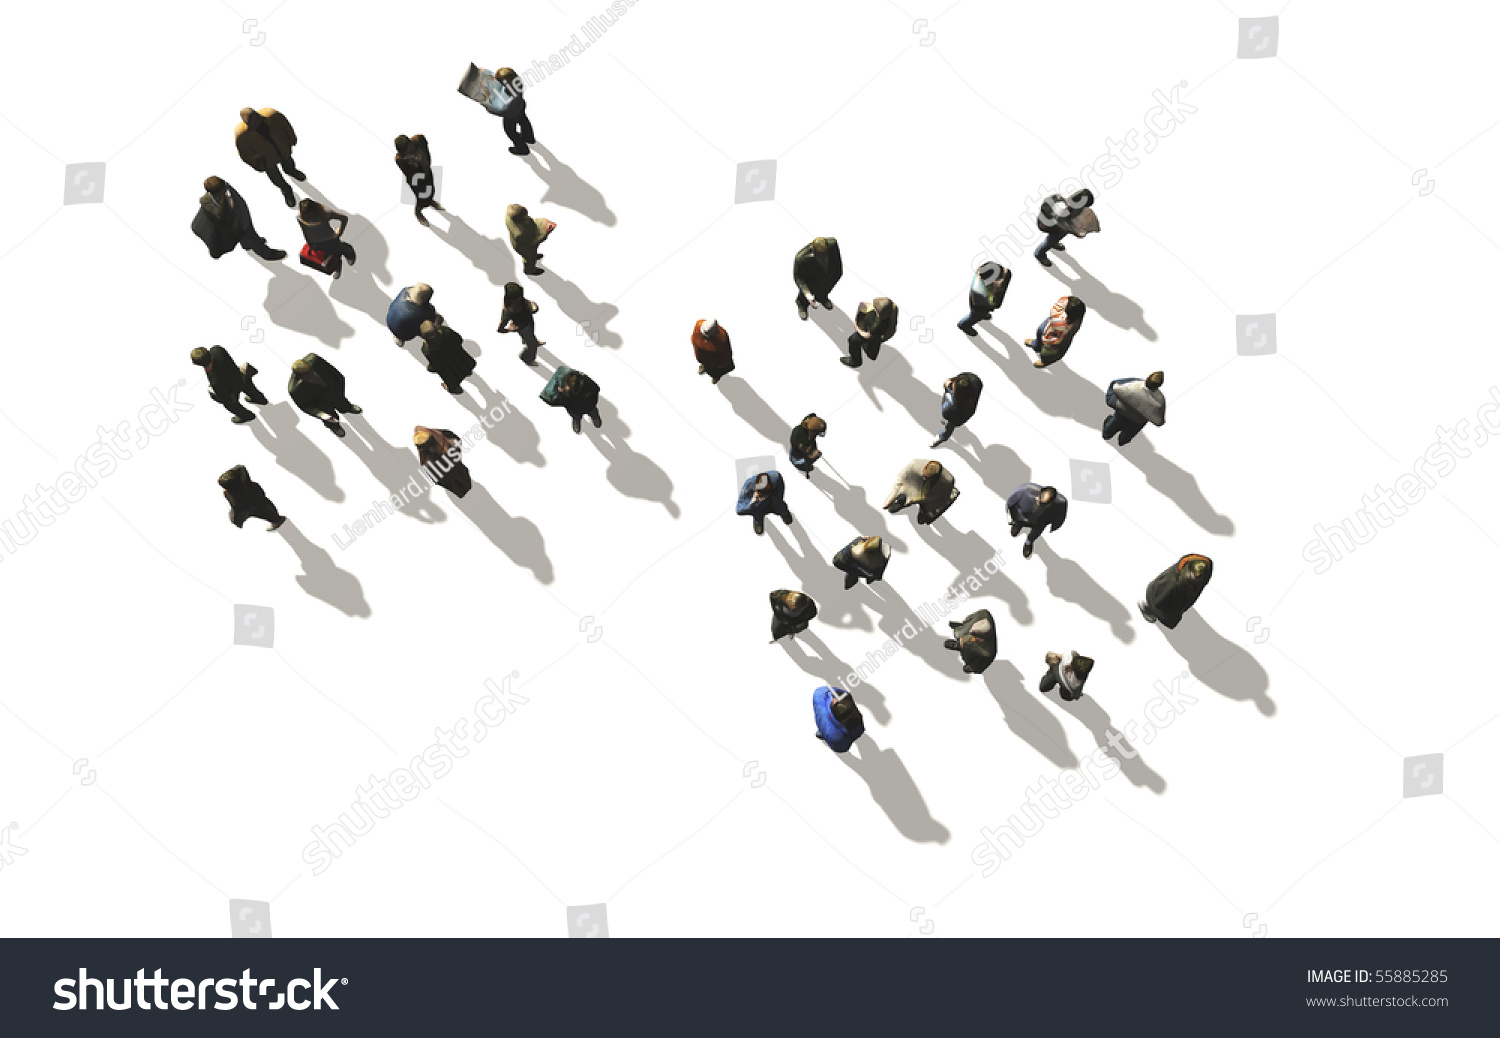 Stock Photo A Crowd Of People In Top View On White